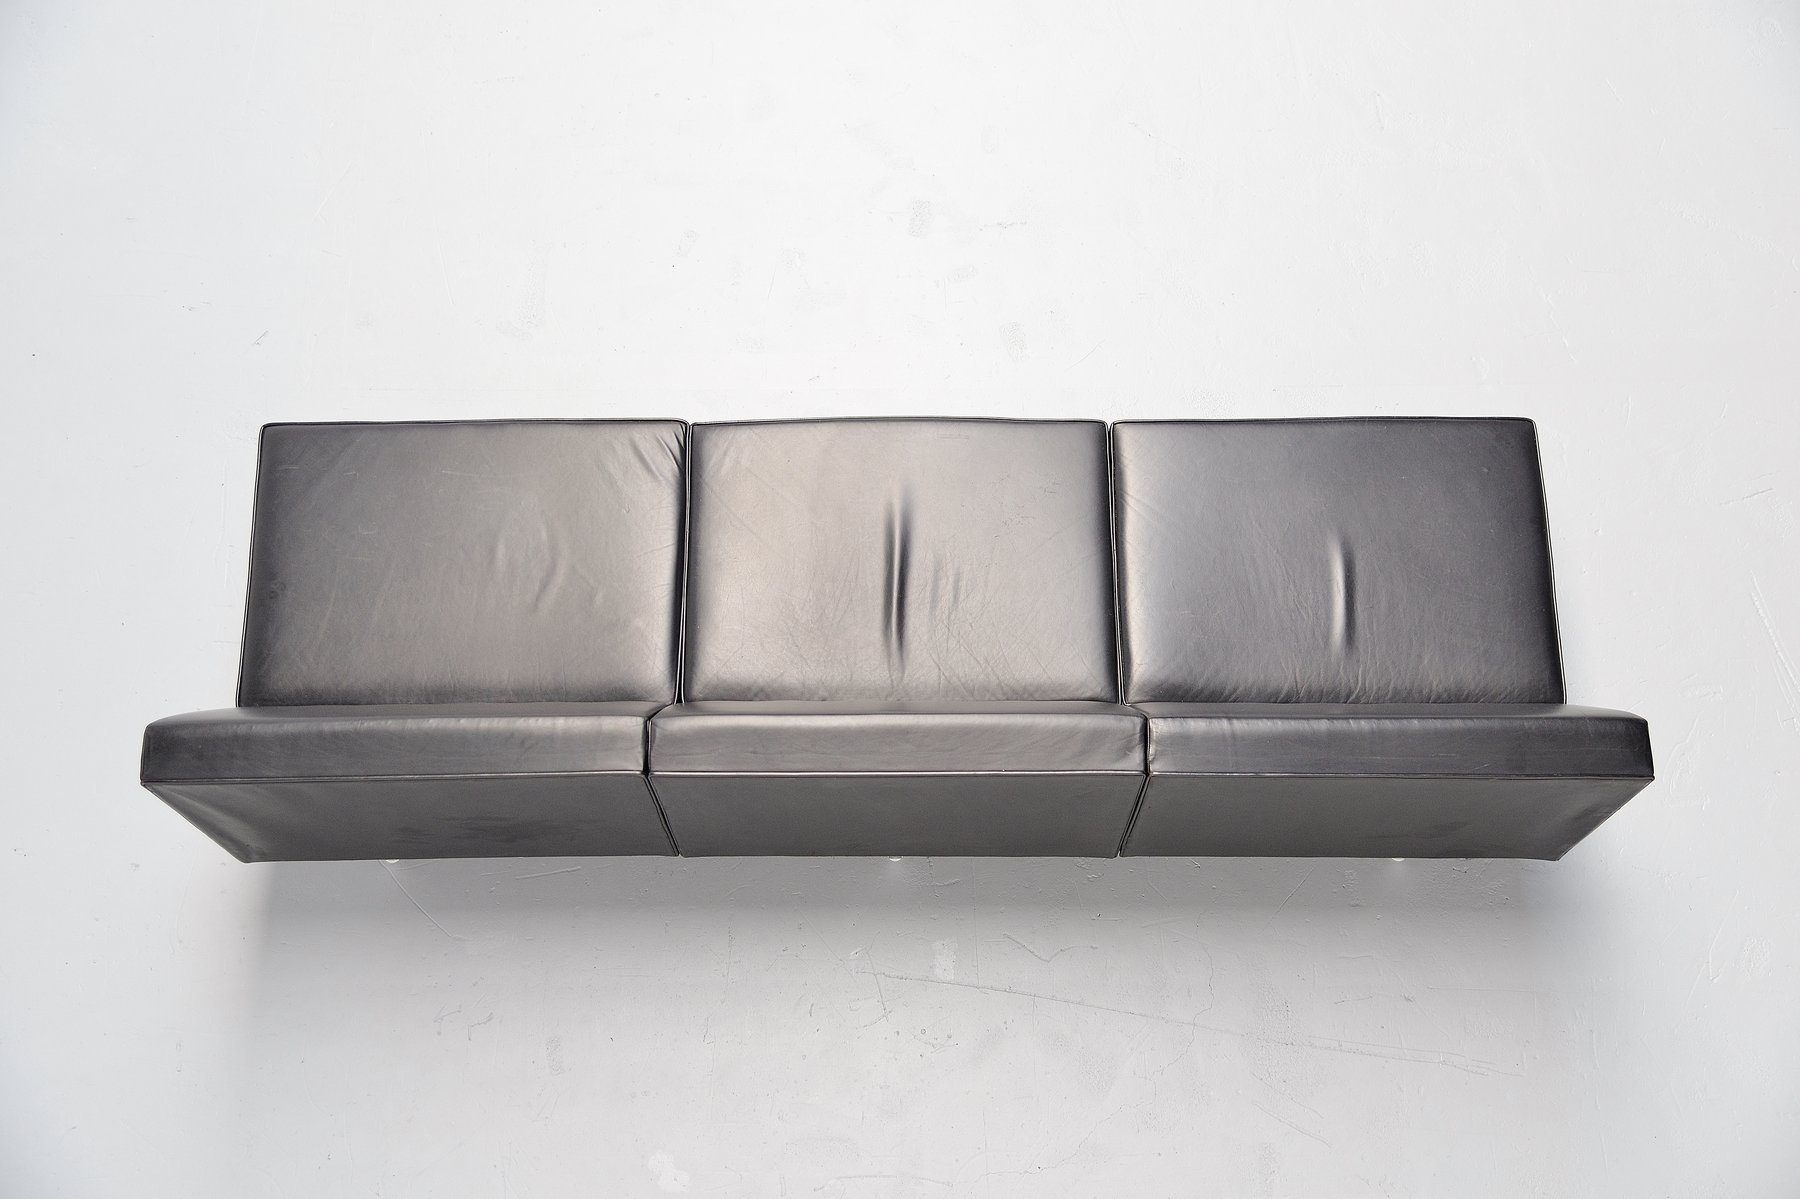 herman miller modular sofa small sofas for bedrooms george nelson 1963